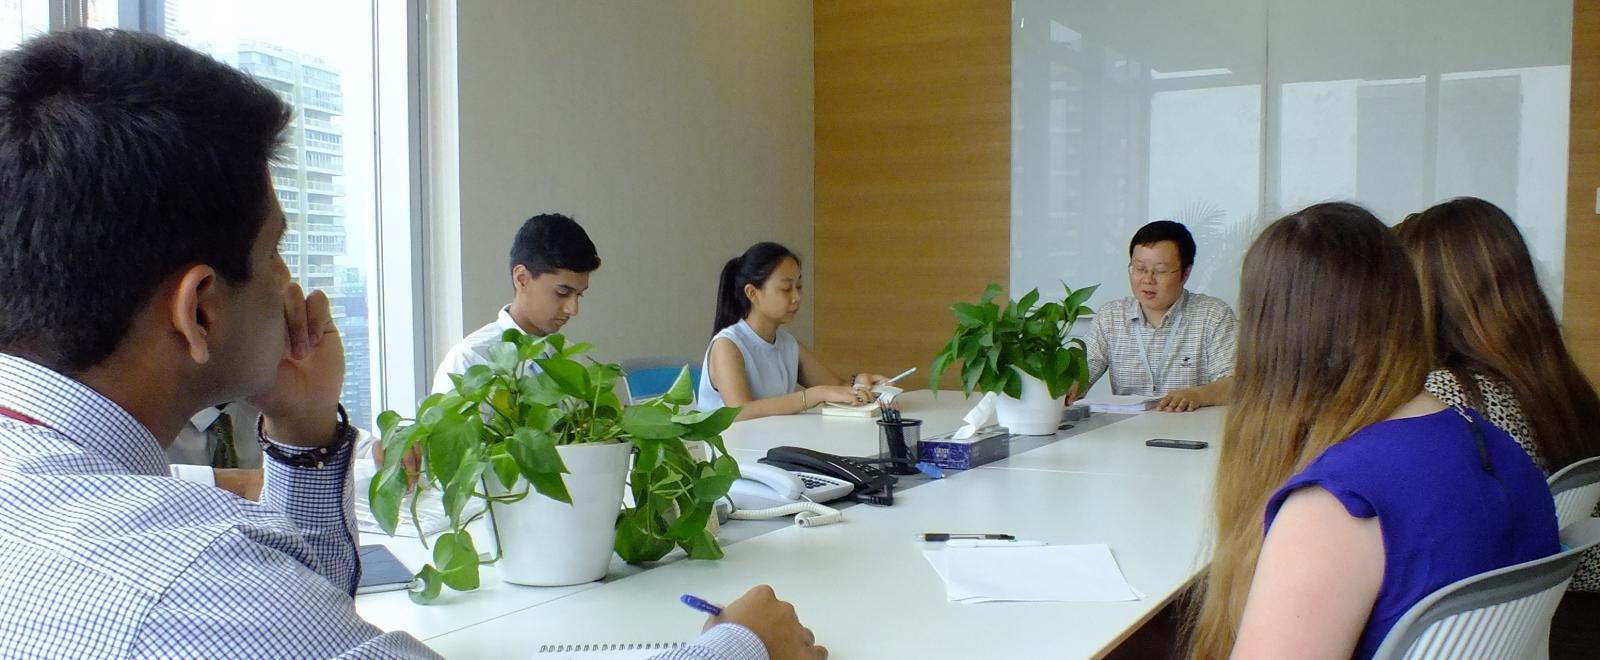 Projects Abroad interns gaining work experience in China attend a meeting held by a local lawyer.